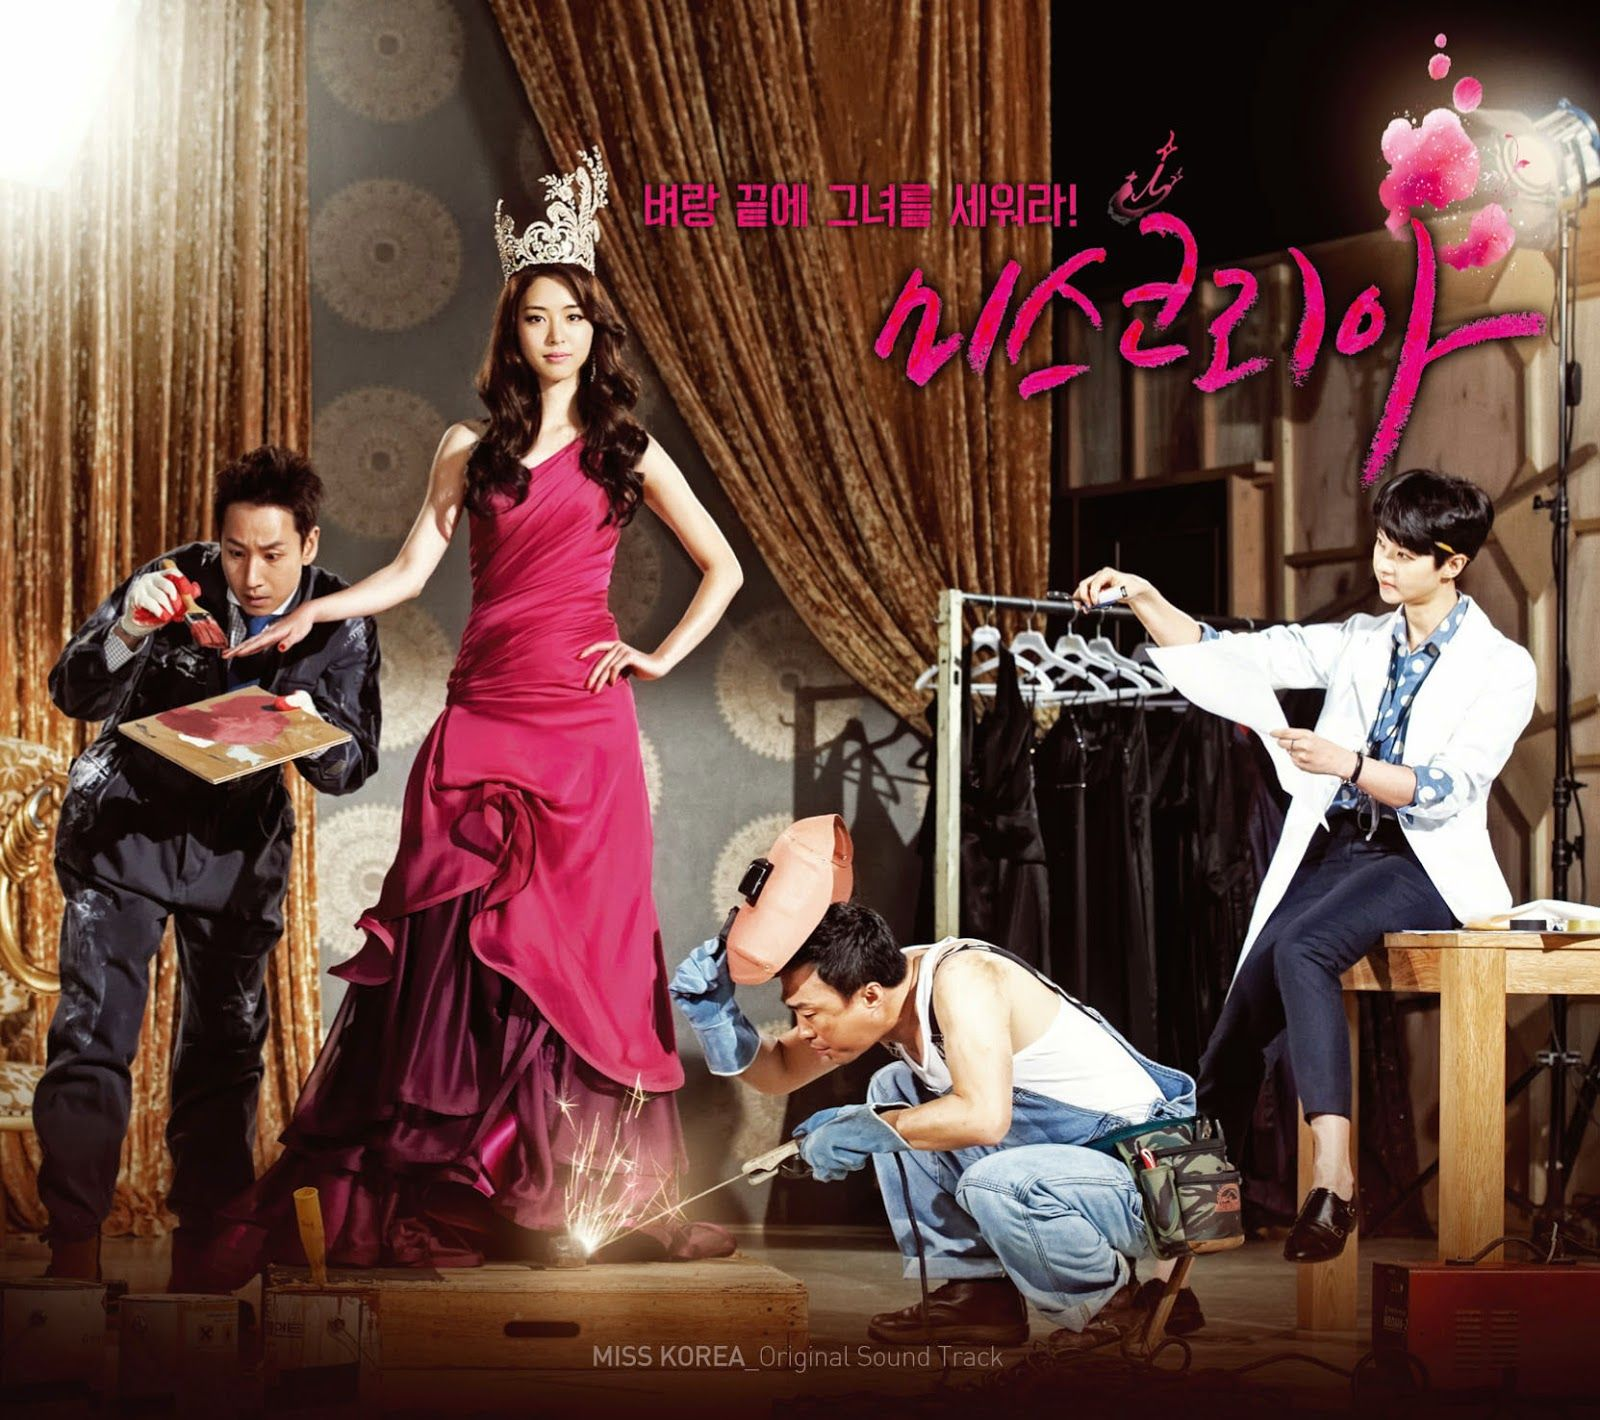 Sad Love Story Korean Drama Songs Mp3 - sevenai